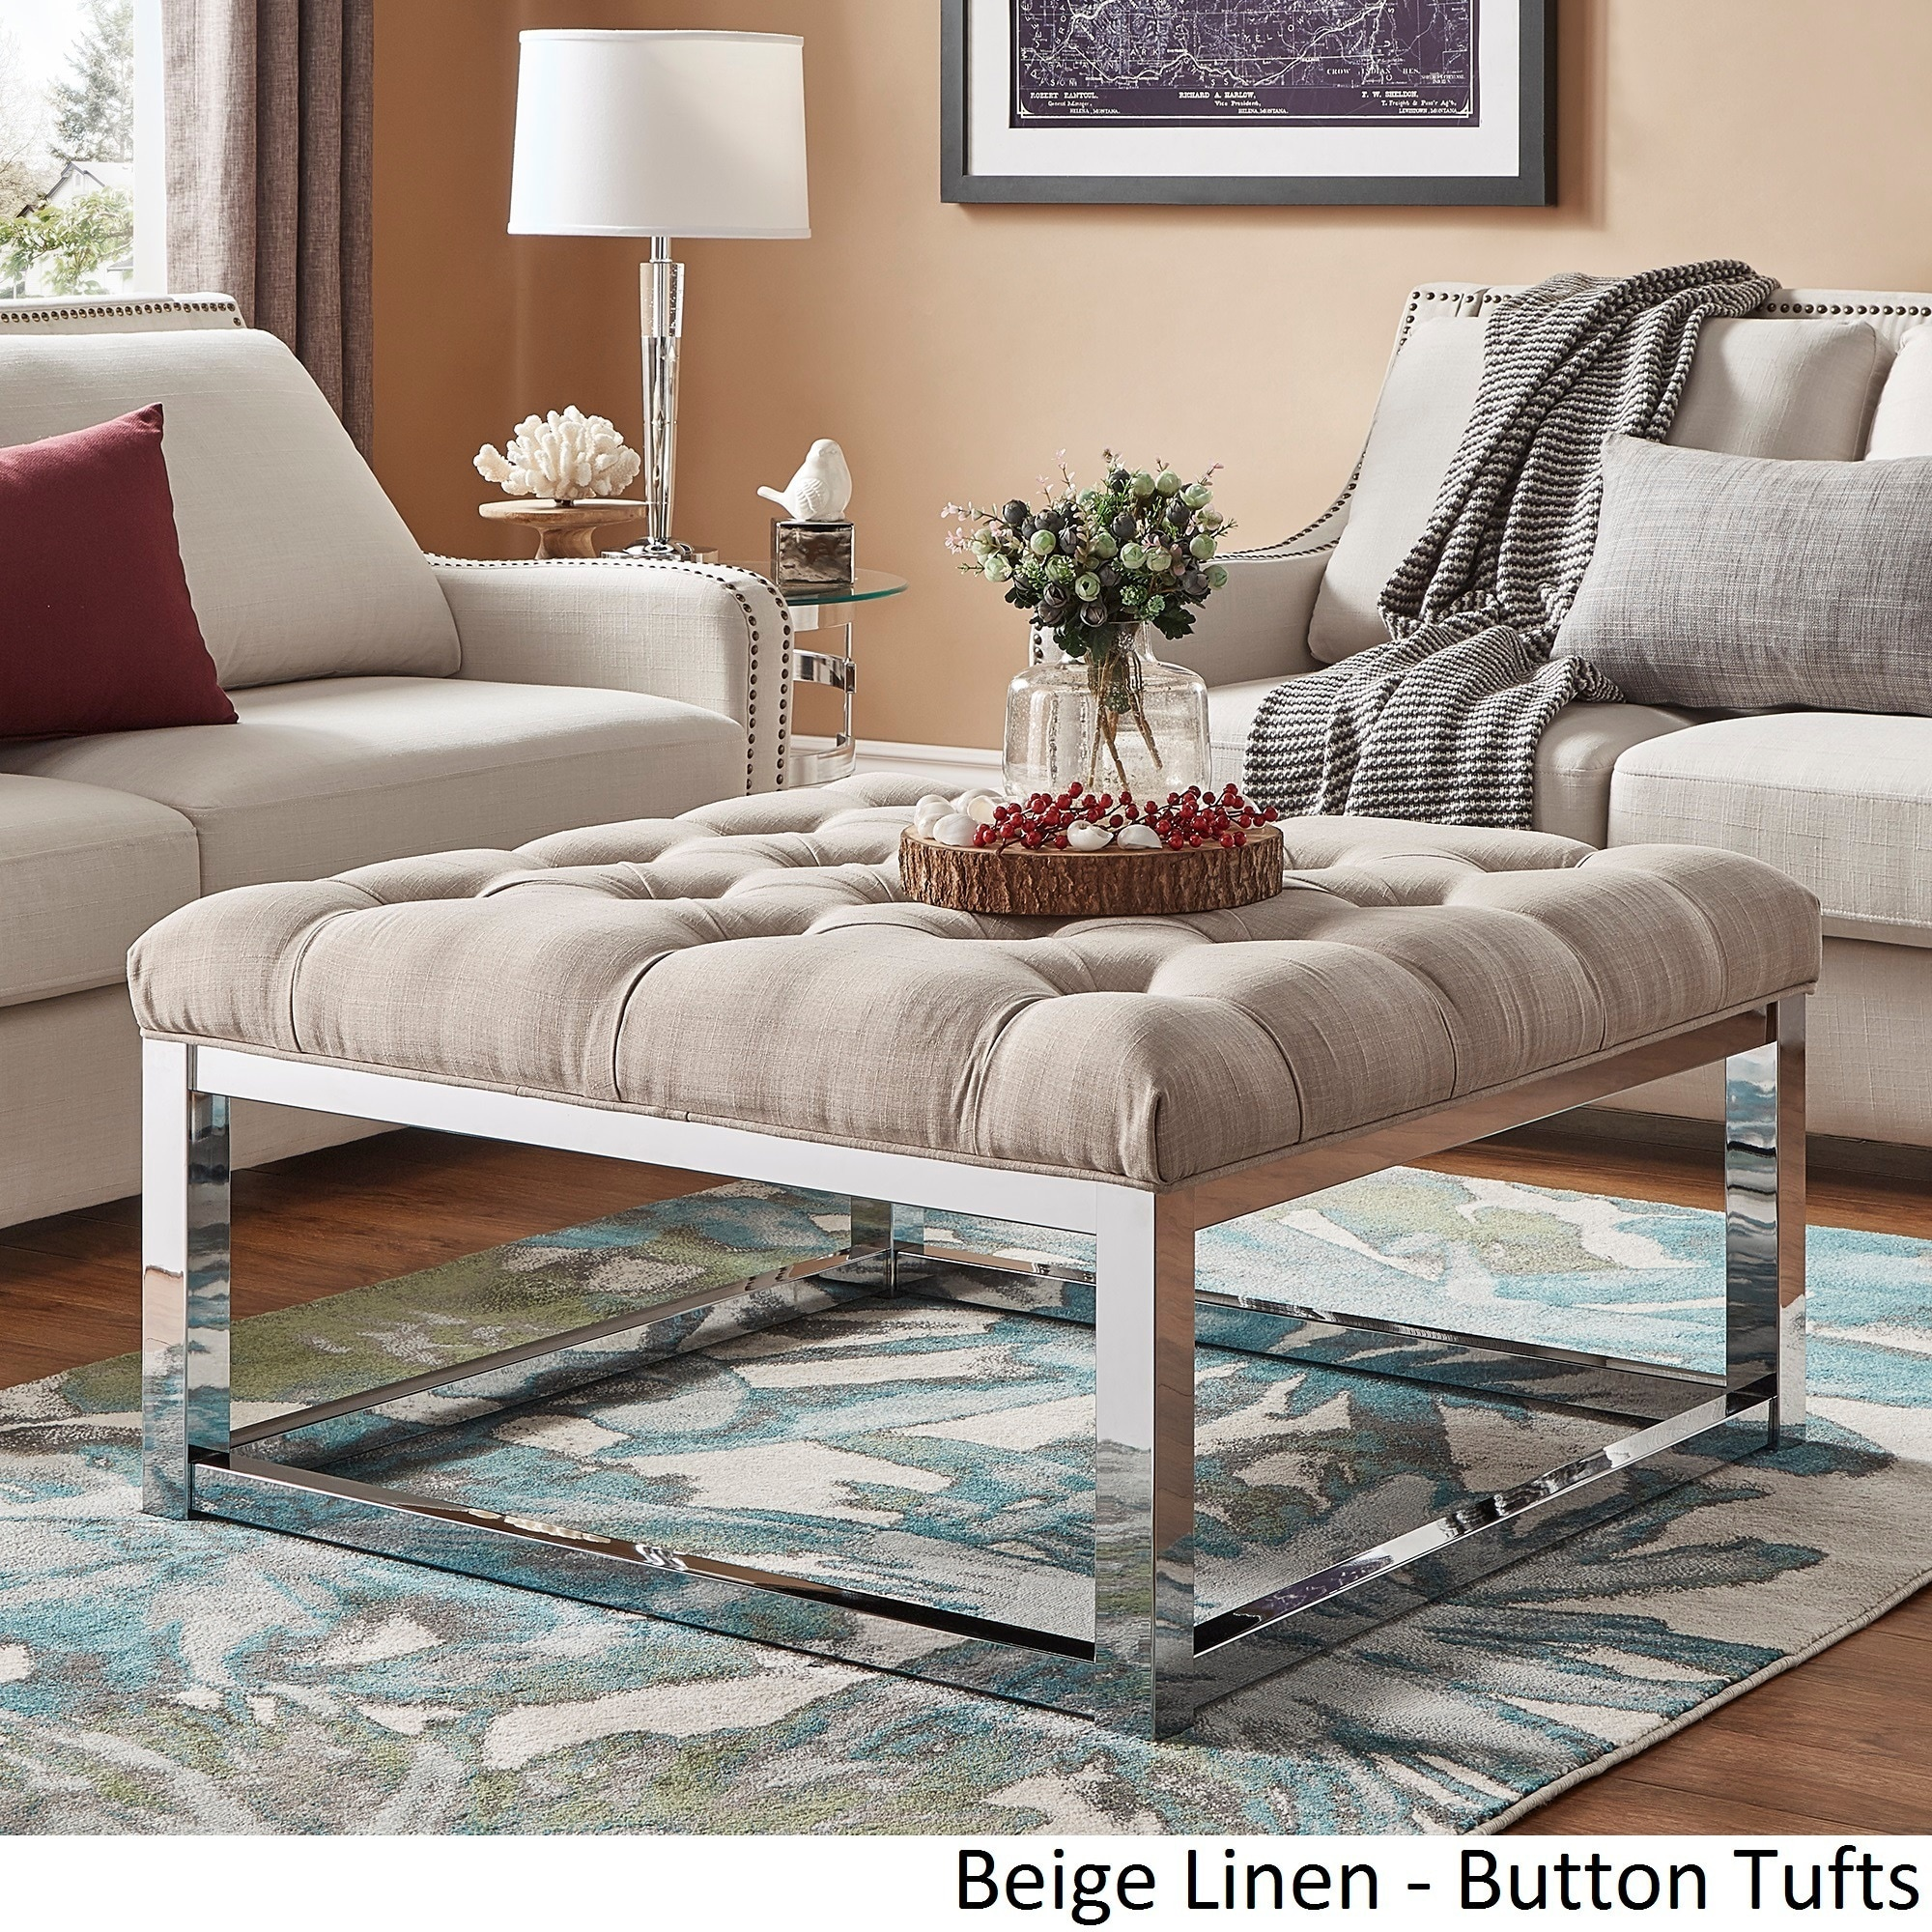 Solene Square Base Ottoman Coffee Table Chrome by iNSPIRE Q Bold